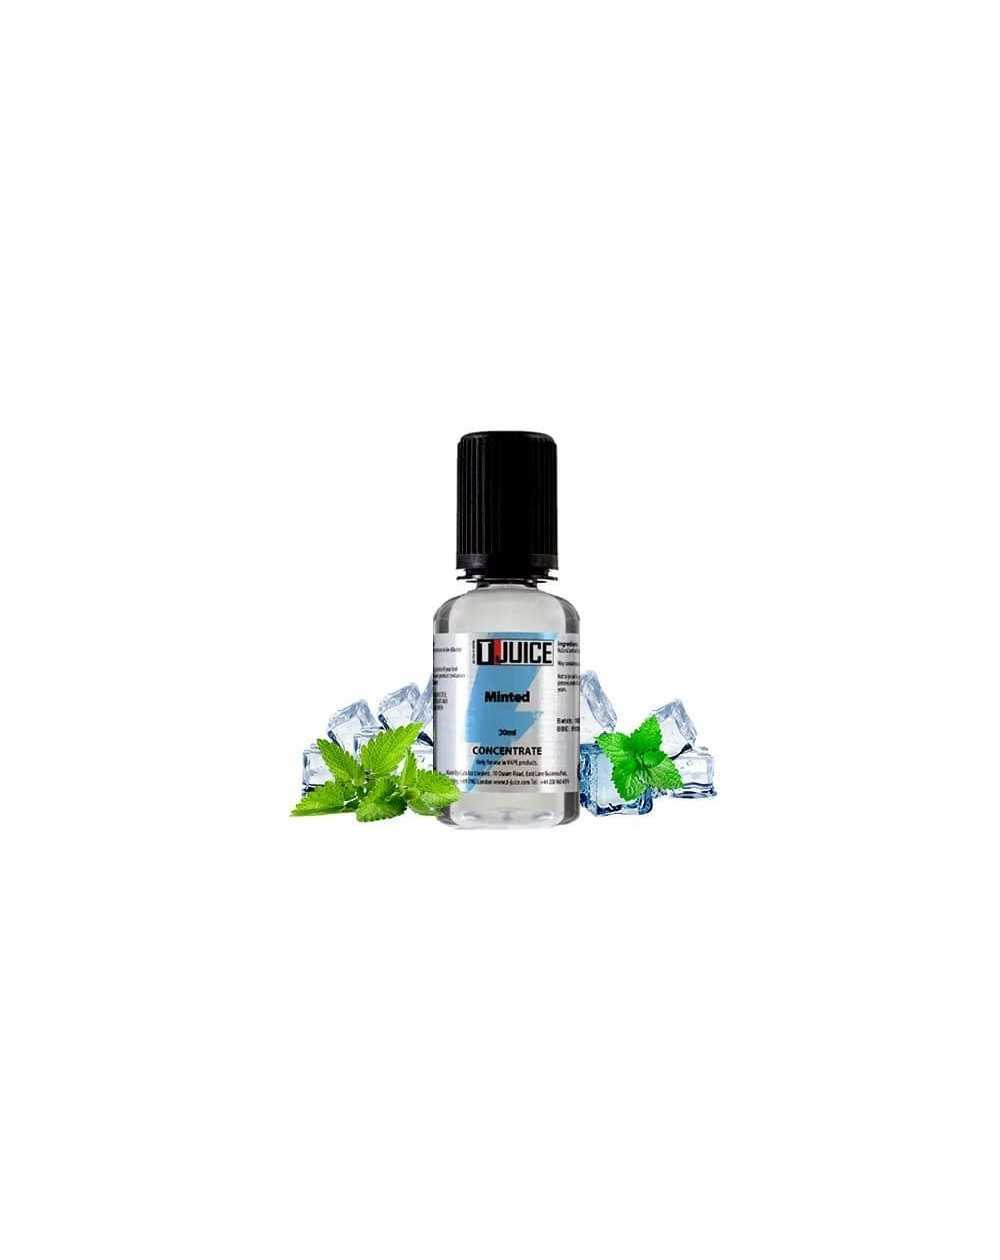 Concentrate aroma Minted 30ml - T-Juice-1